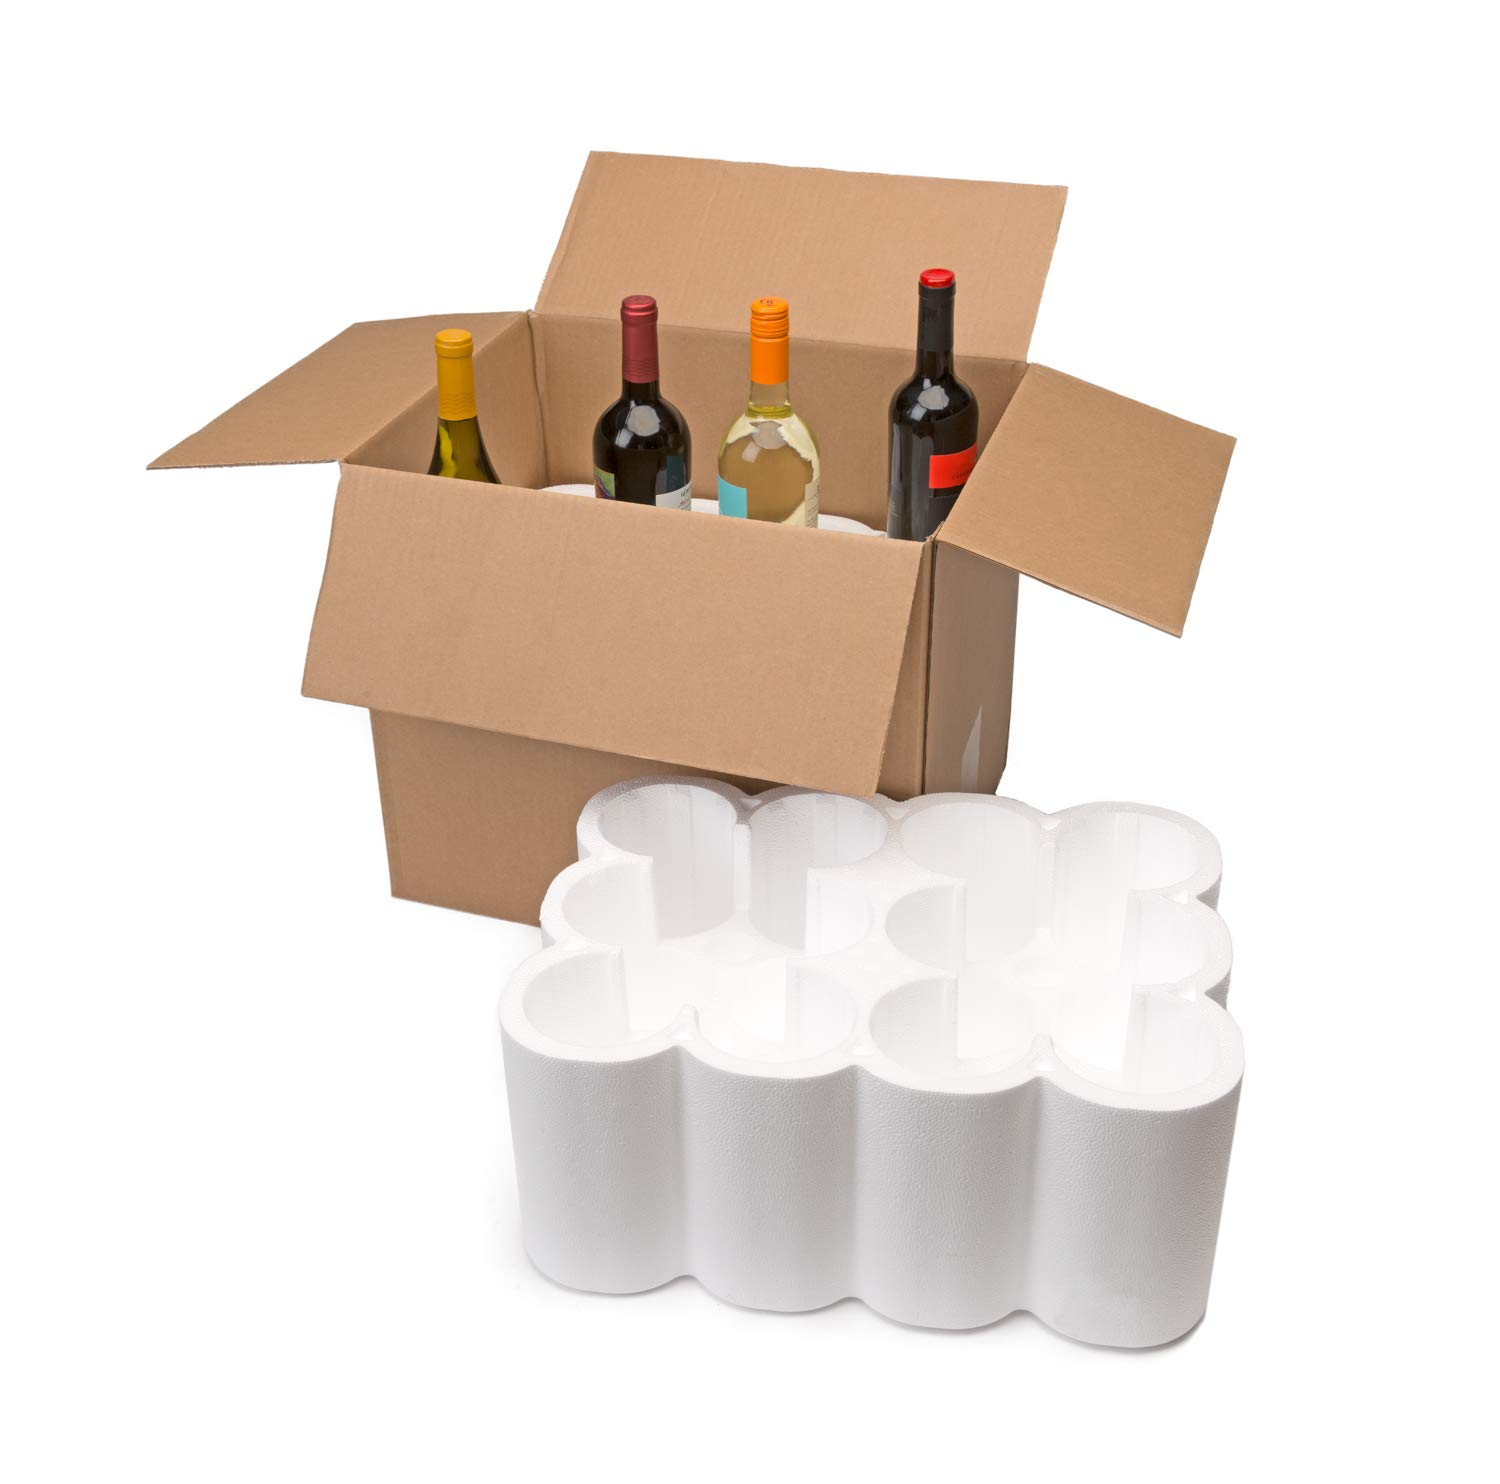 U-Haul Wine Bottle Shipping Kit for 12, 750 ml Bottles- Includes a 18-1/8'' x 13-7/8'' x 15-1/2'' Box & Styrofoam Inserts by U-Haul